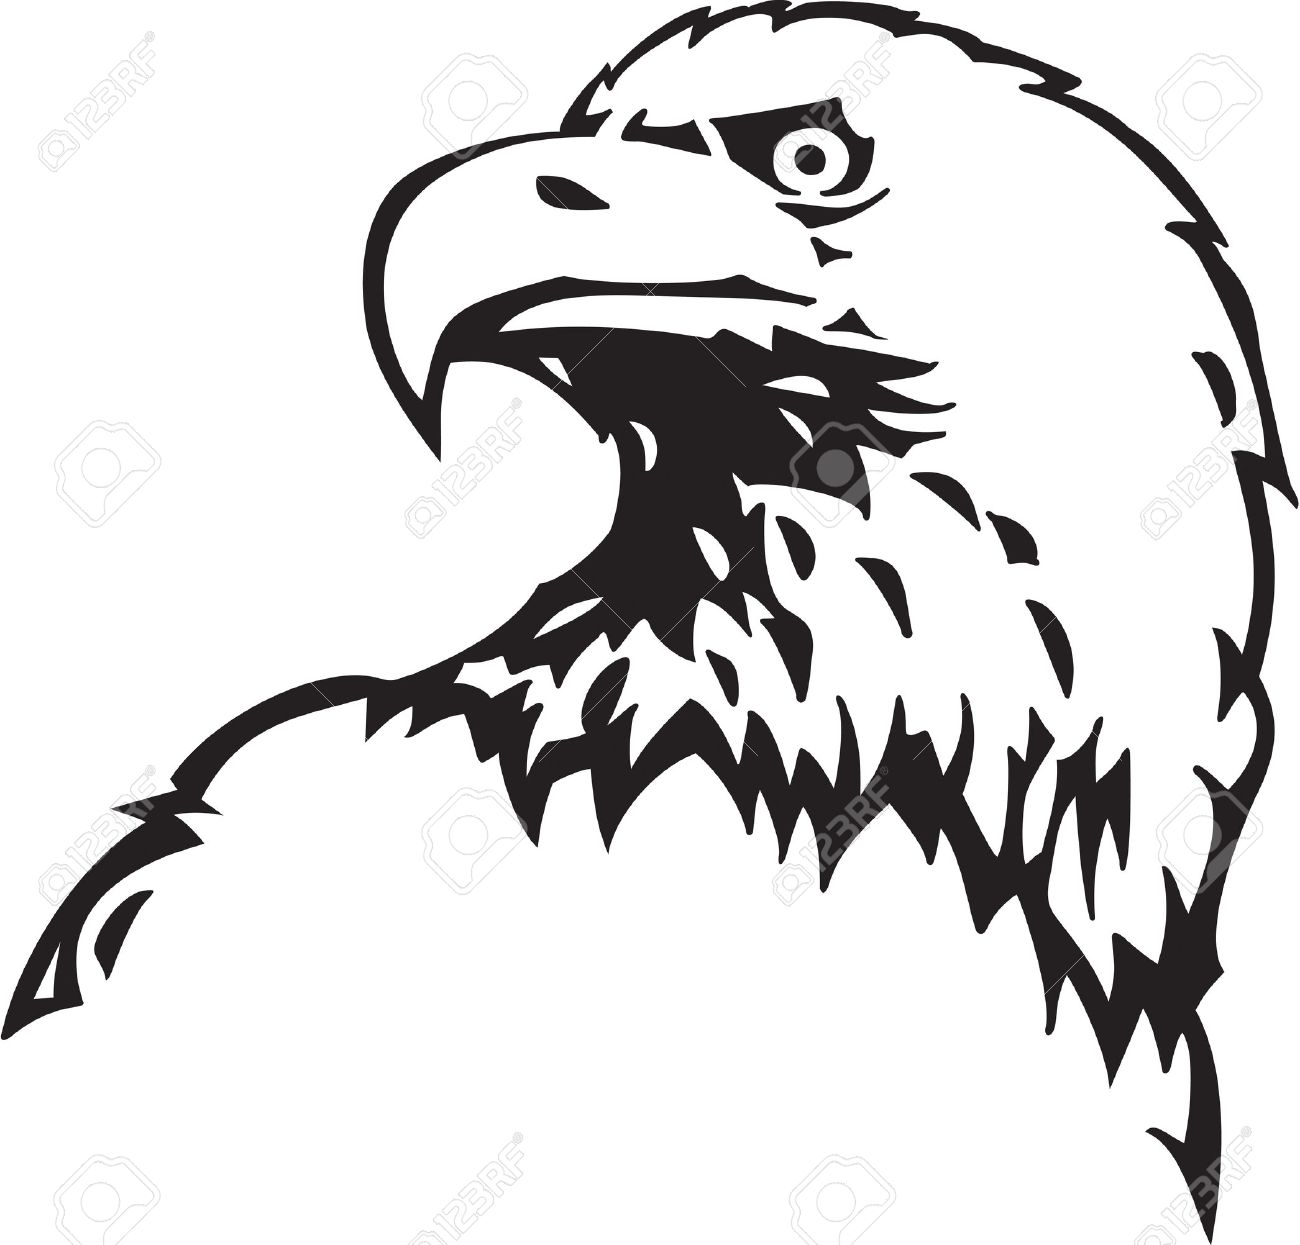 Bald Eagle clipart black and white 73 Free 83 Clipart Clipart